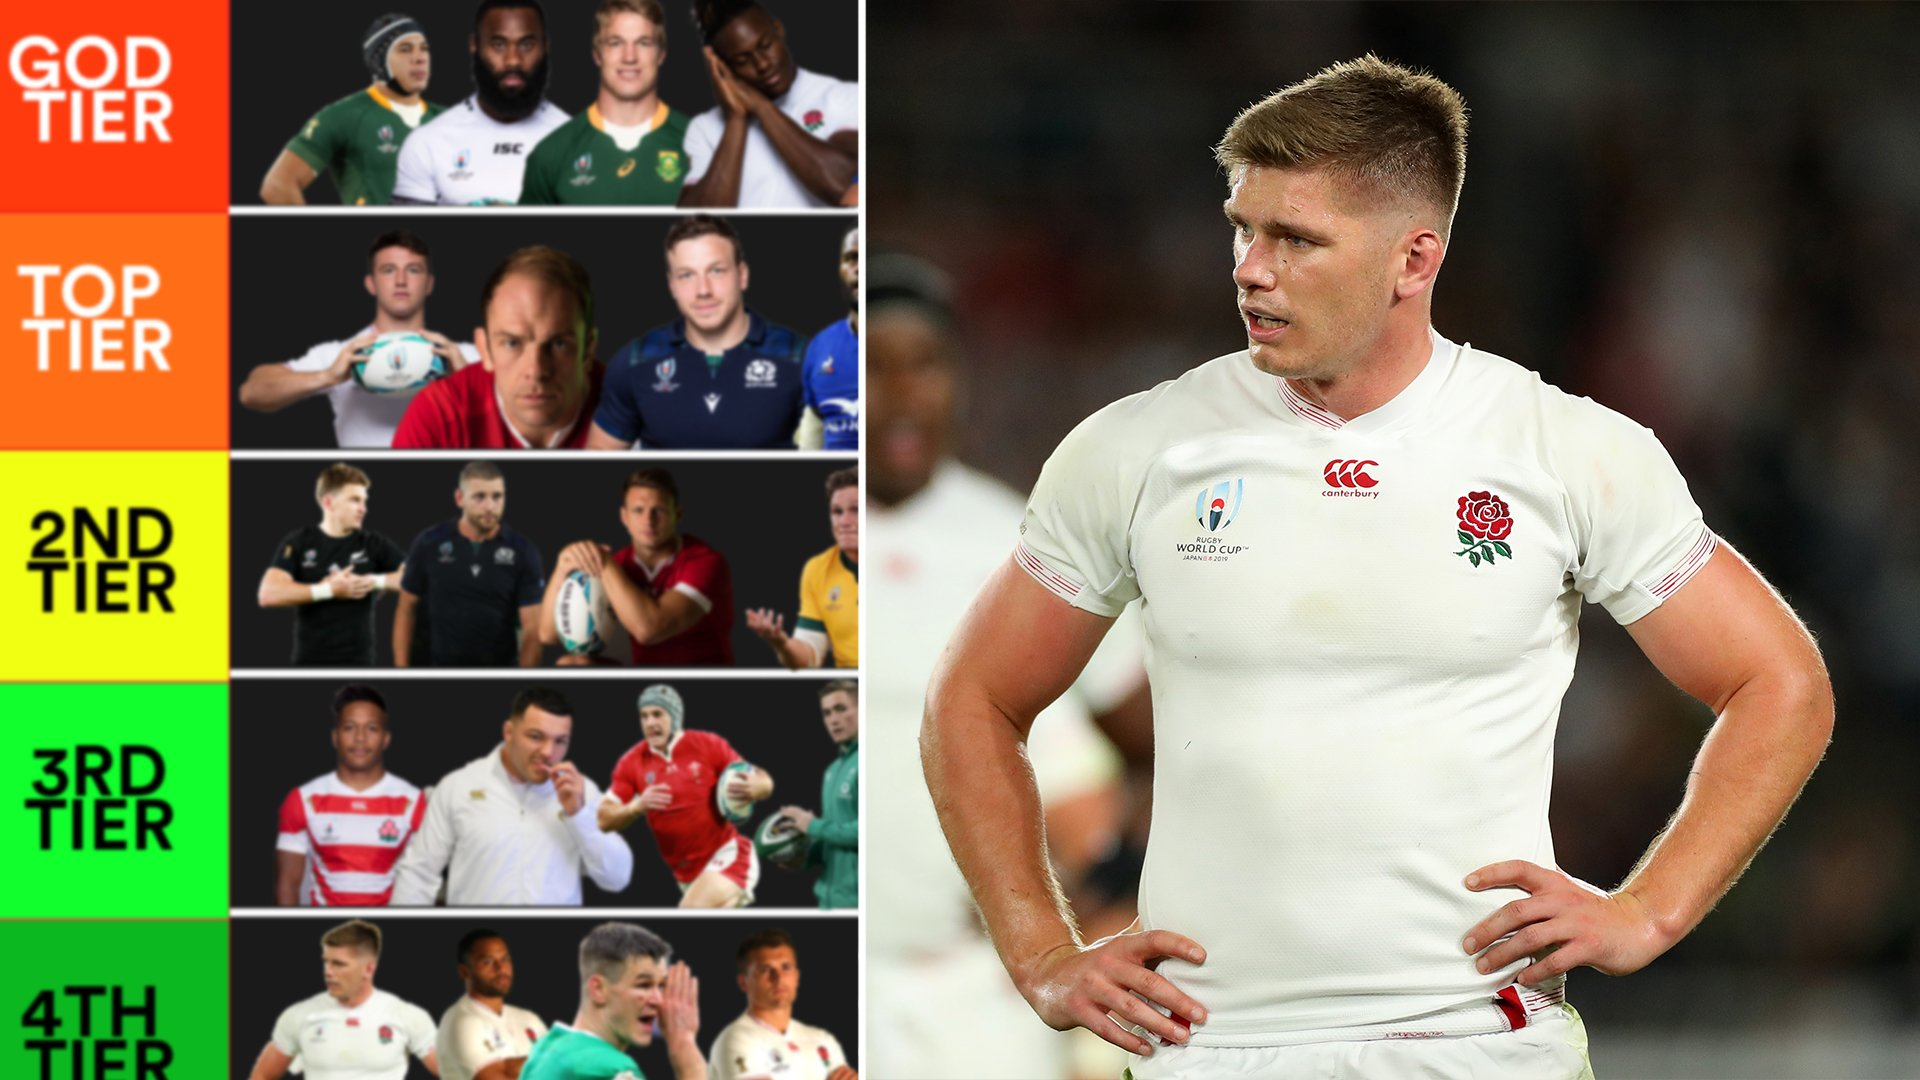 Someone has ranked rugby players in 2020 from GOAT Tier to 4th Tier